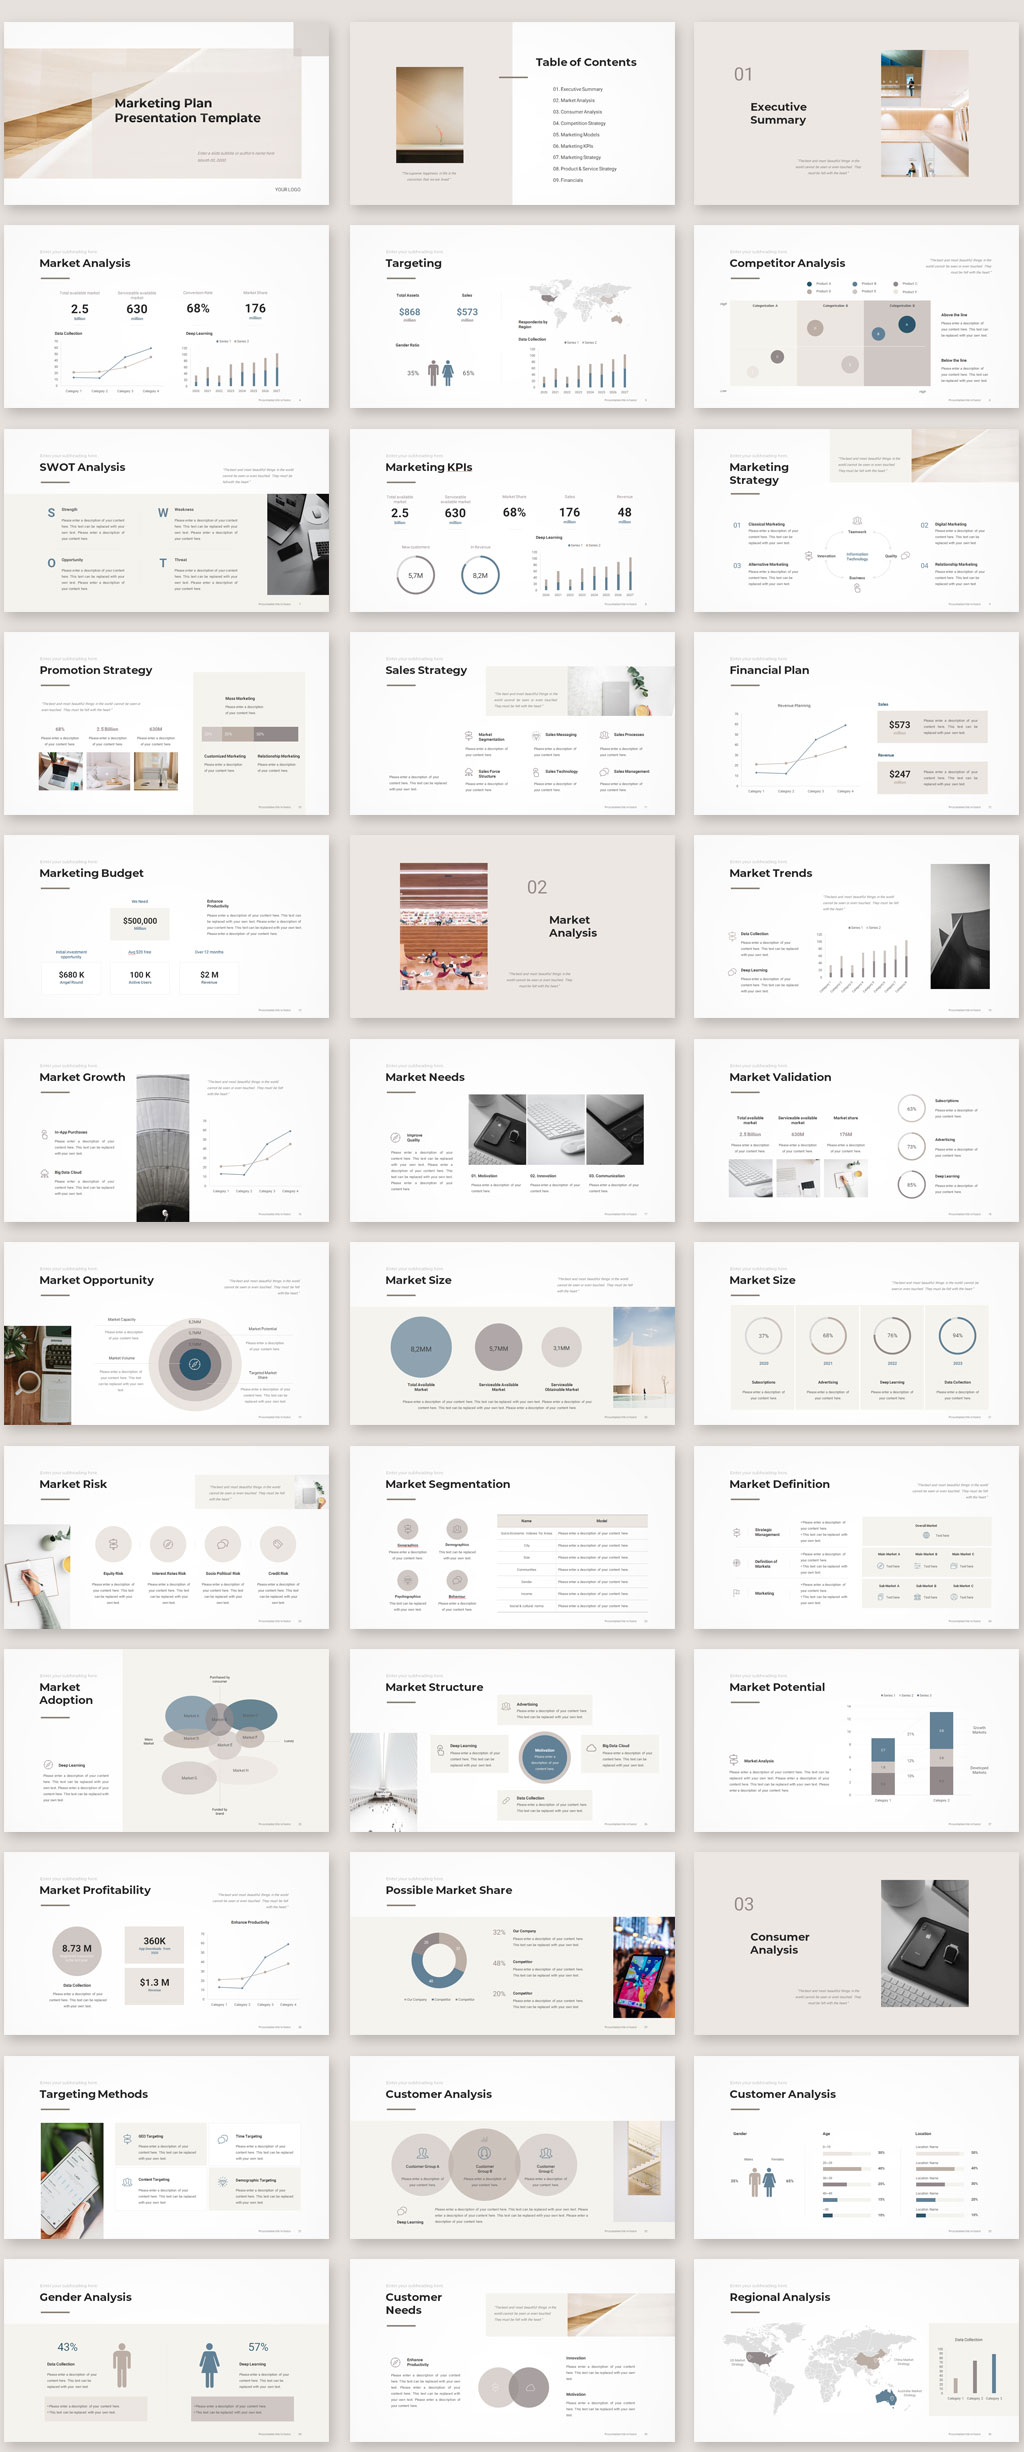 Marketing Plan Template 2020 Preview01